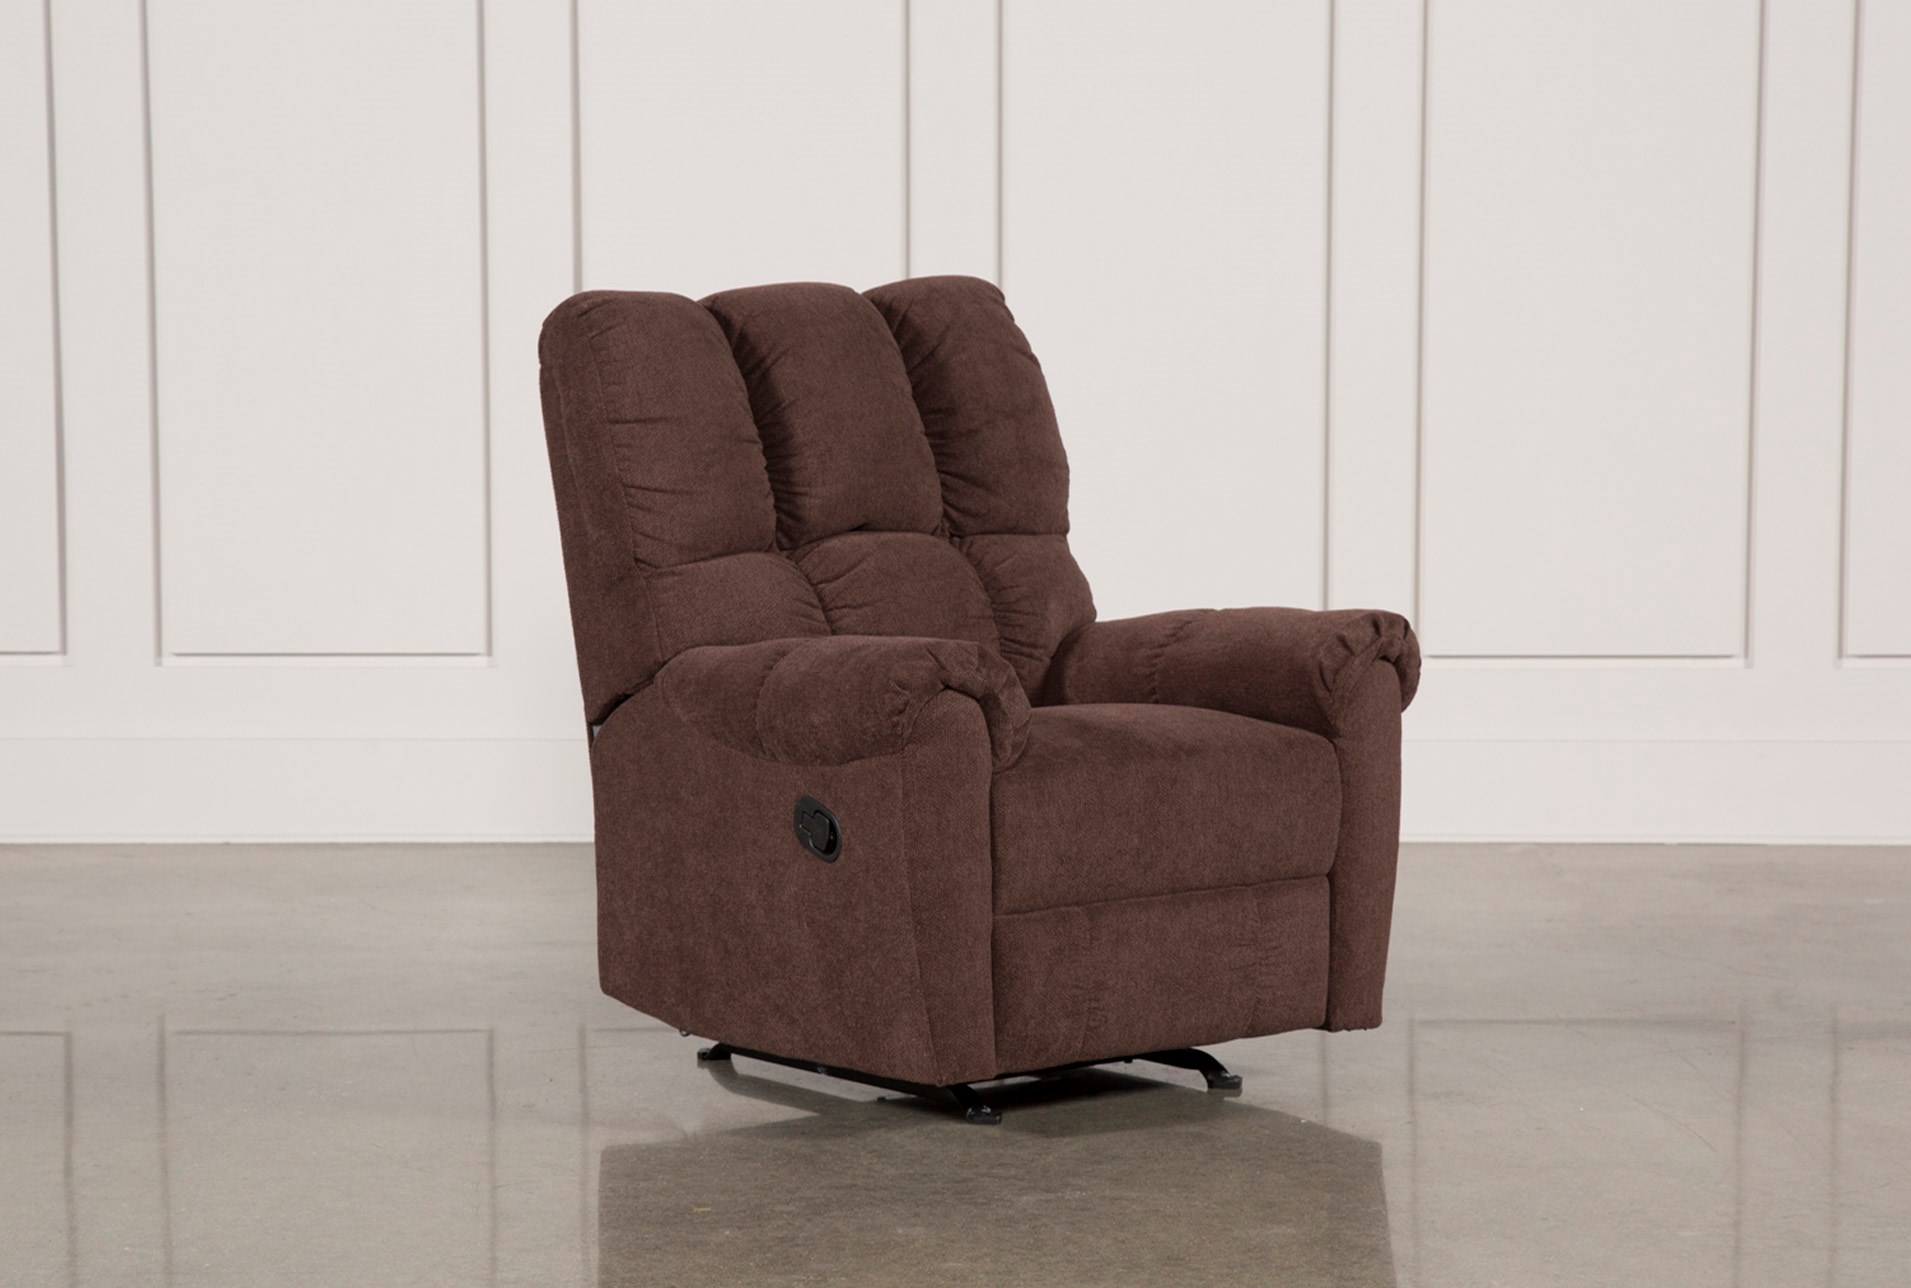 chestnut living pdp recliner small carina grey spaces power rocker